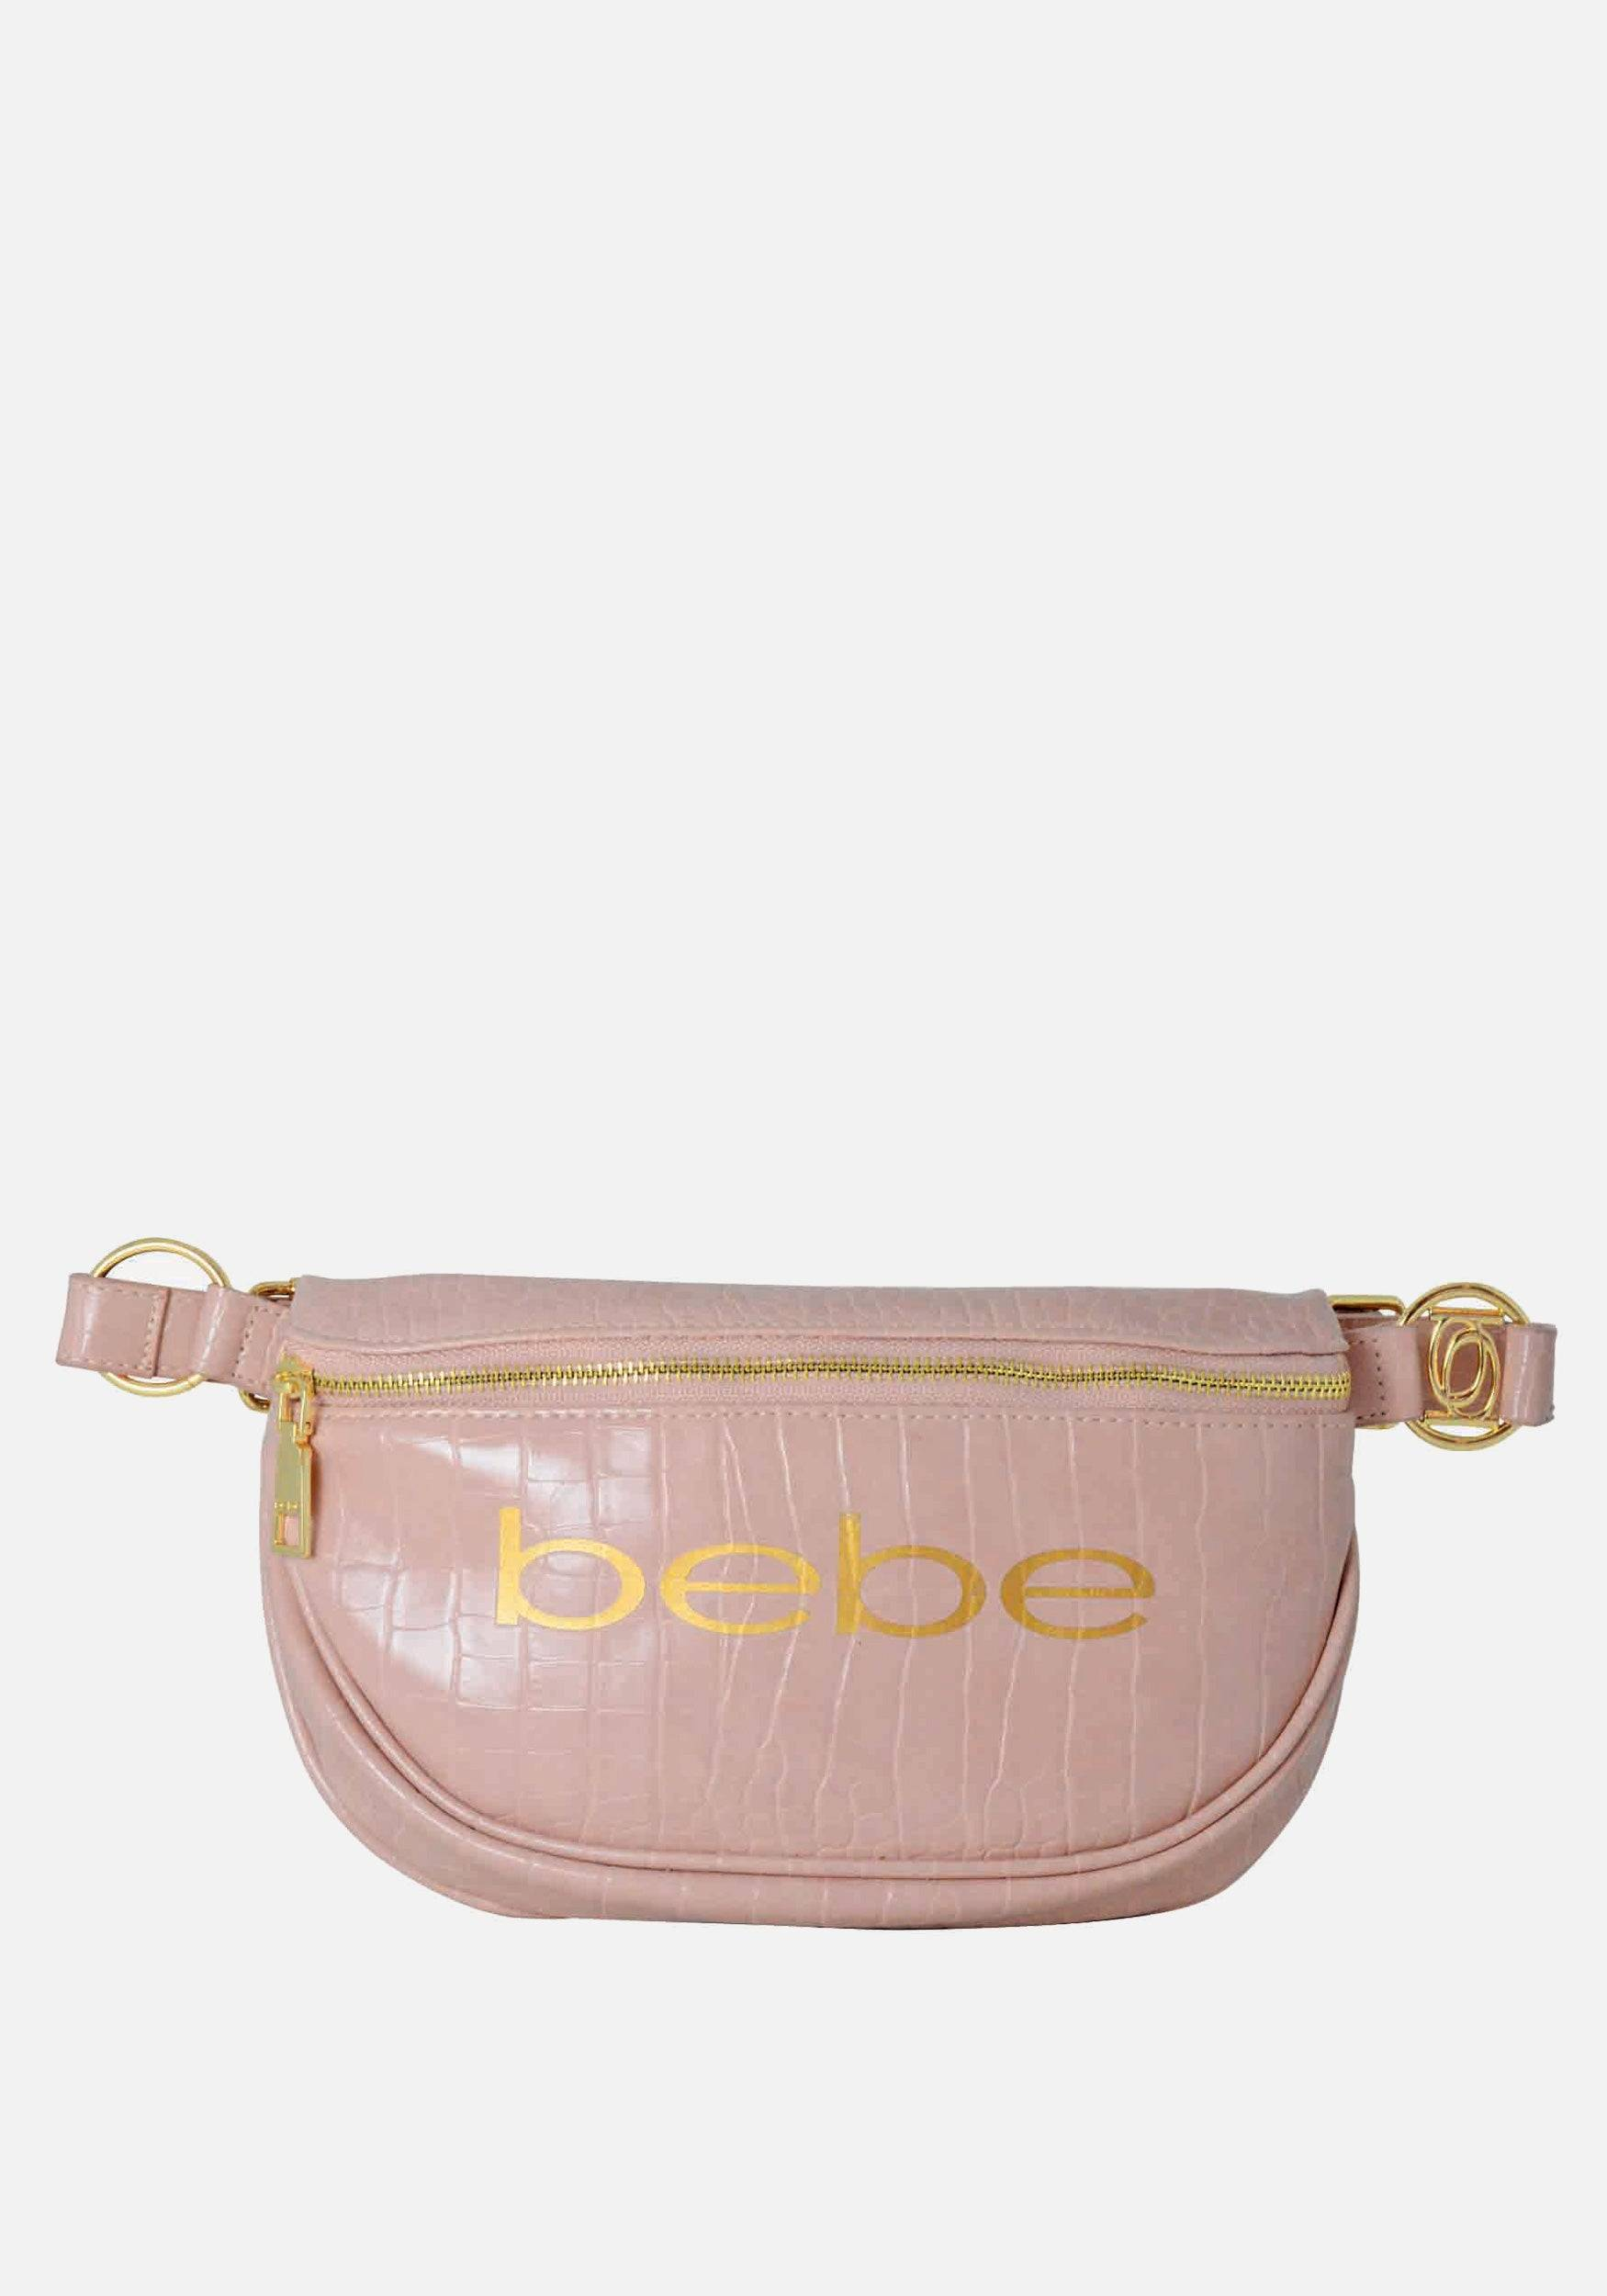 Bebe Women's Josephine Croco Convertible Sling in Dusty Pink Polyester